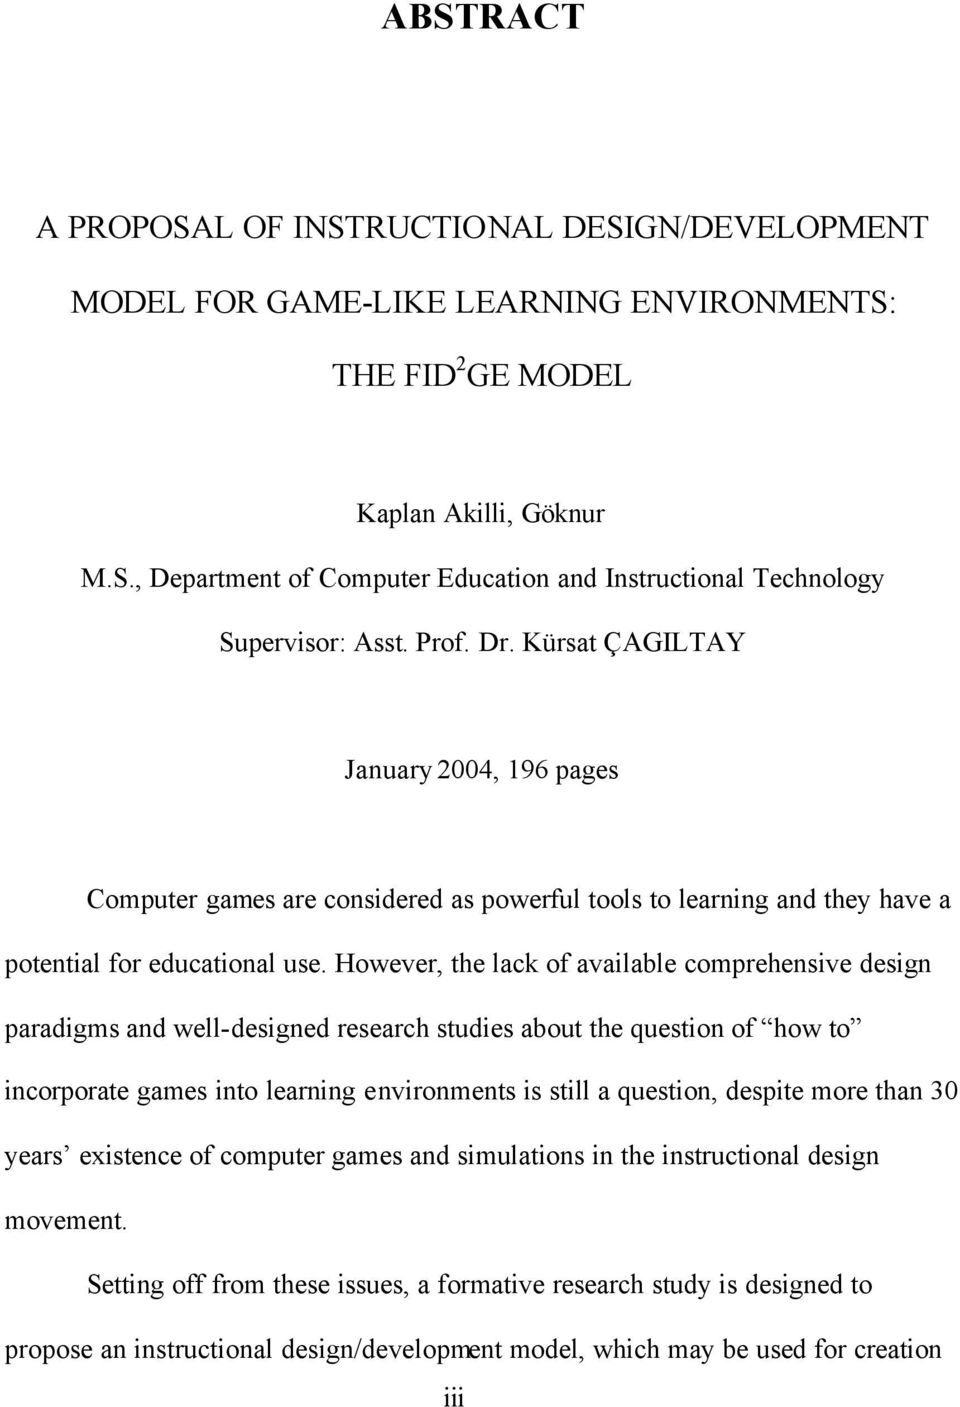 However, the lack of available comprehensive design paradigms and well-designed research studies about the question of how to incorporate games into learning environments is still a question, despite